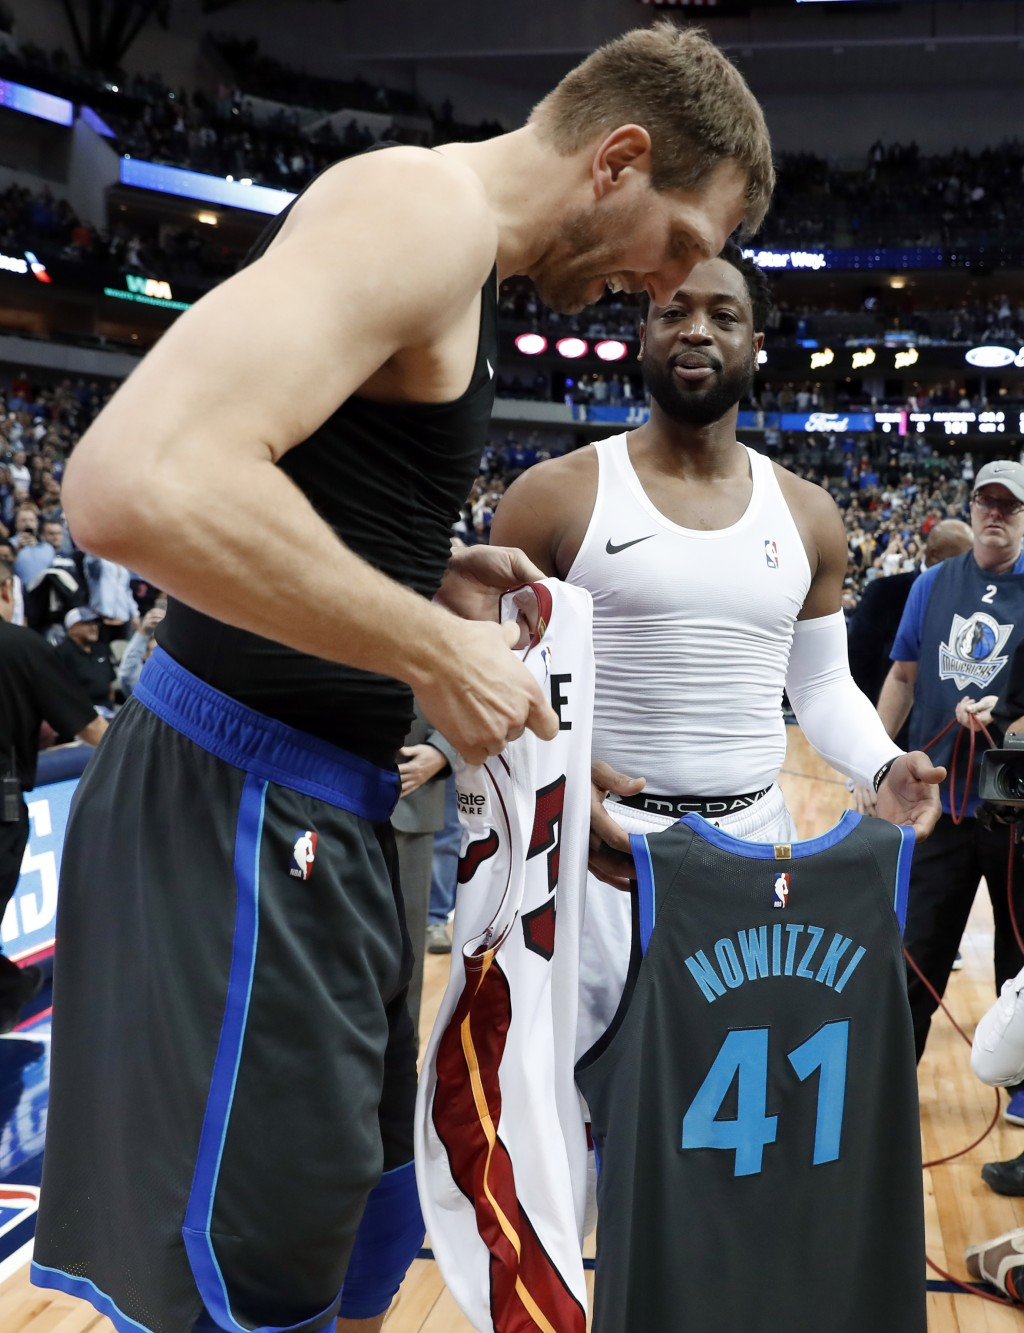 Dallas Mavericks' Dirk Nowitzki left, and Miami Heat's Dwyane Wade, second from right, talk as they swap jerseys after an NBA basketball game in Dalla...